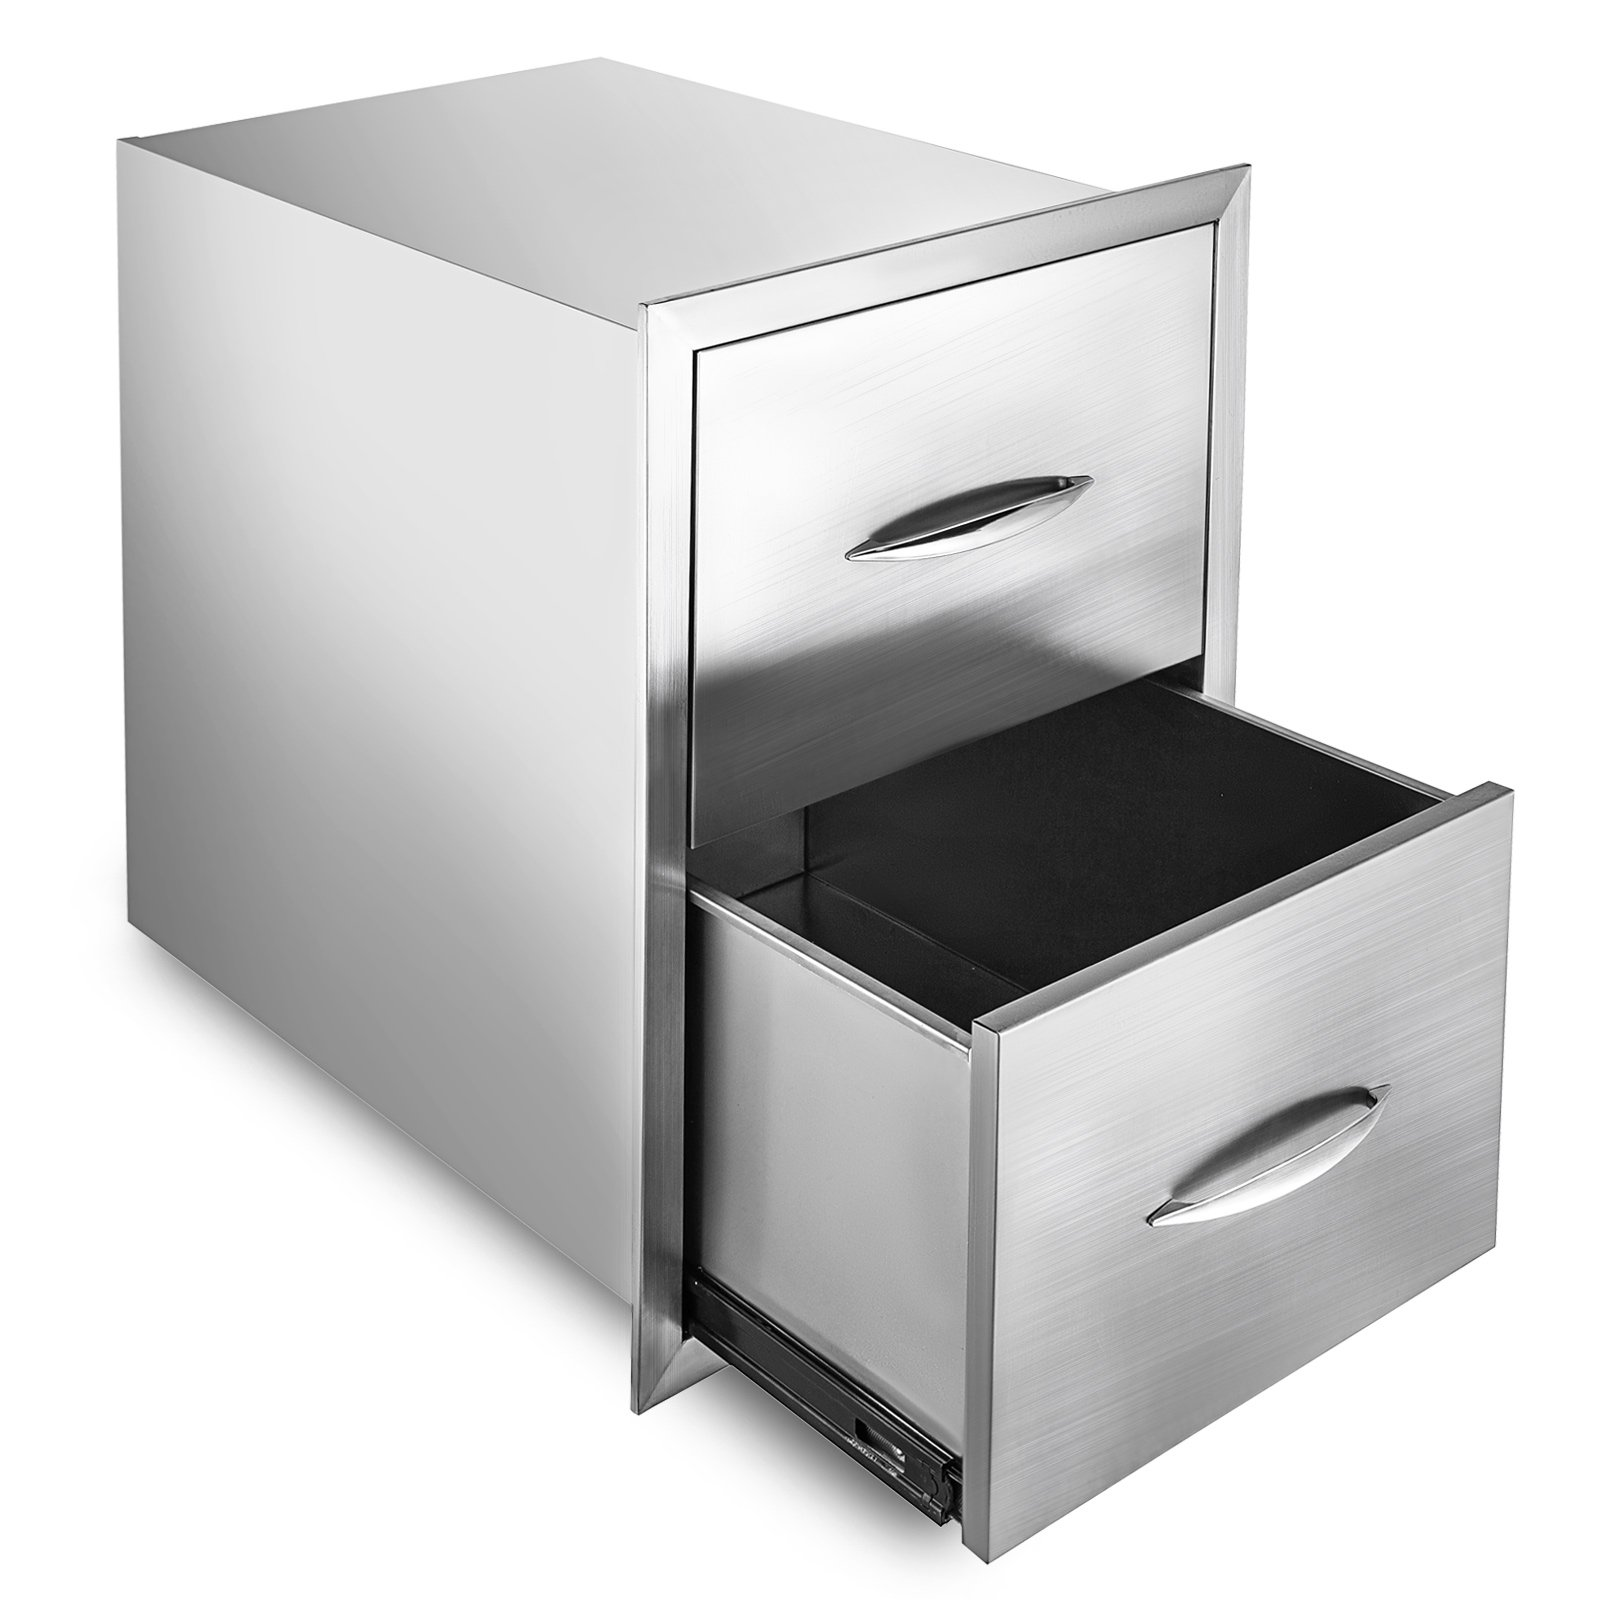 Happybuy Outdoor Kitchen Drawer 24''x18'' Stainless Steel BBQ Island Drawer Storage with Chrome Handle Double Access Drawer Flush Mount Sliver Double Access Drawer (Outdoor Kitchen Drawer 24''x18'')